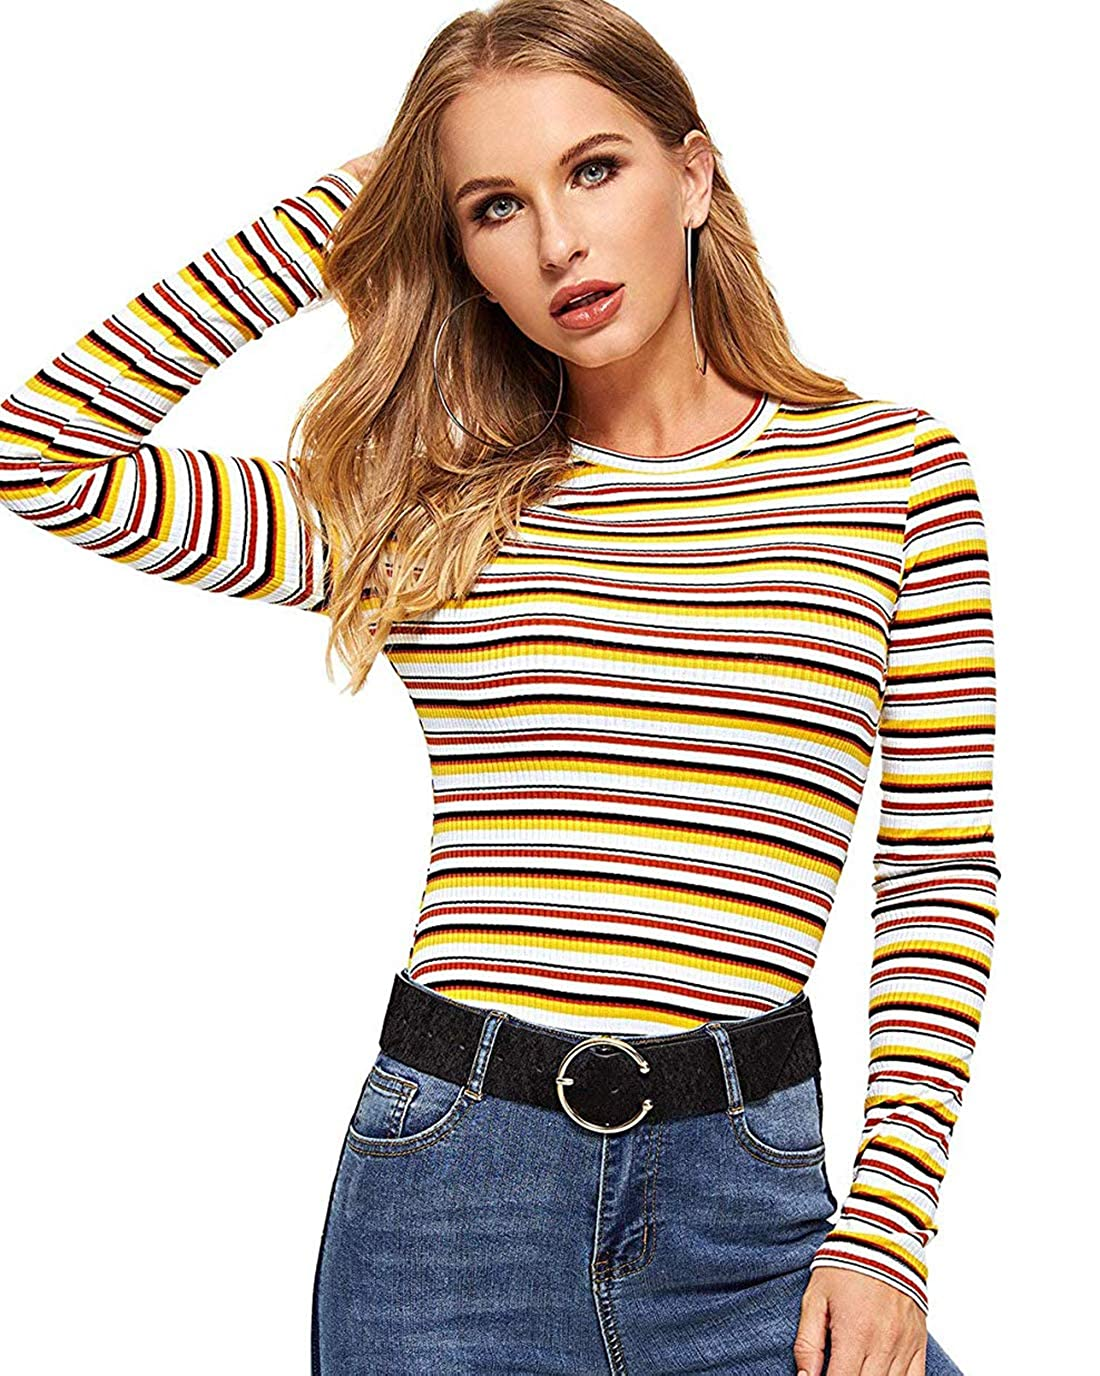 Amulti2 Milumia Women's Casual Striped Ribbed Tee Knit Crop Top